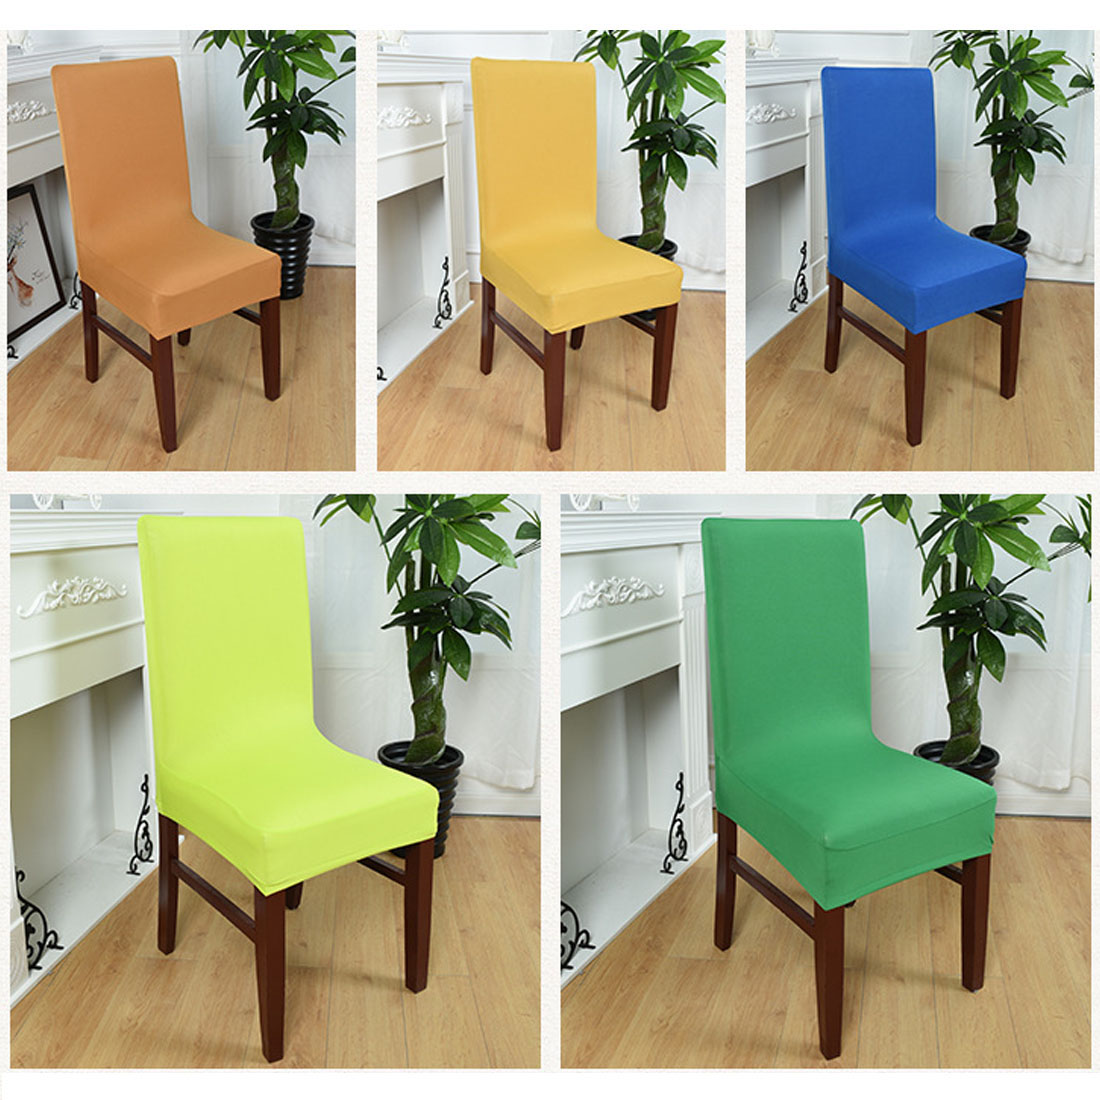 Wholesale Dining cadeira Spandex Strech Dining Room Chair Covers Protector Slipcover Decor housse de chaise for sillas bone